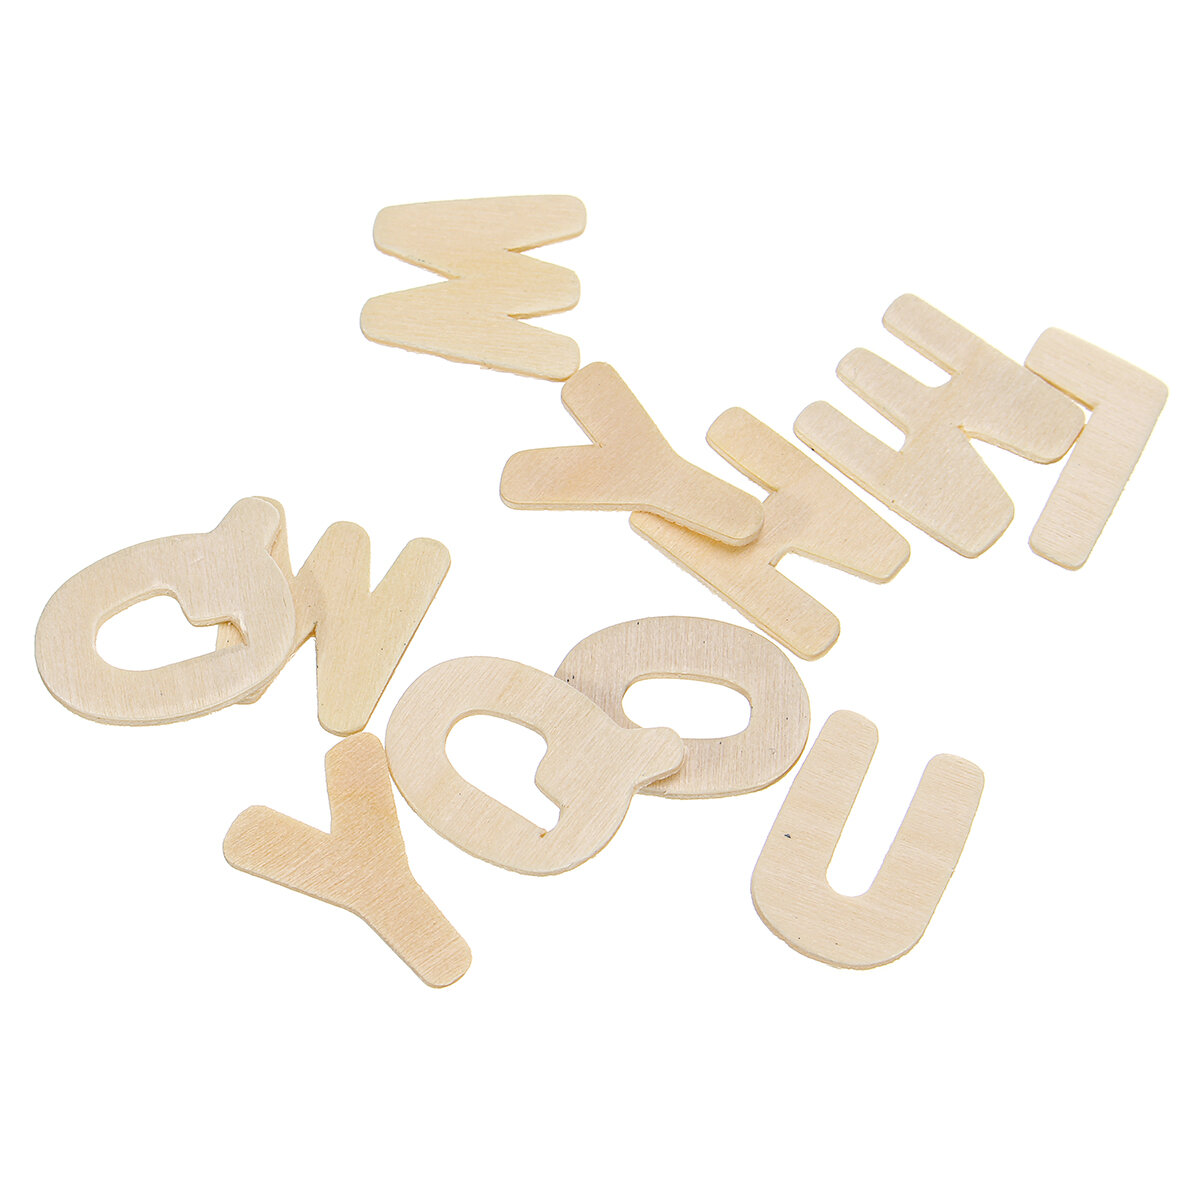 156X Wooden Scrabble Tiles Letters Puzzle Blocks Crafts Wood Alphabet Kids Early Education Toys Gift - 9